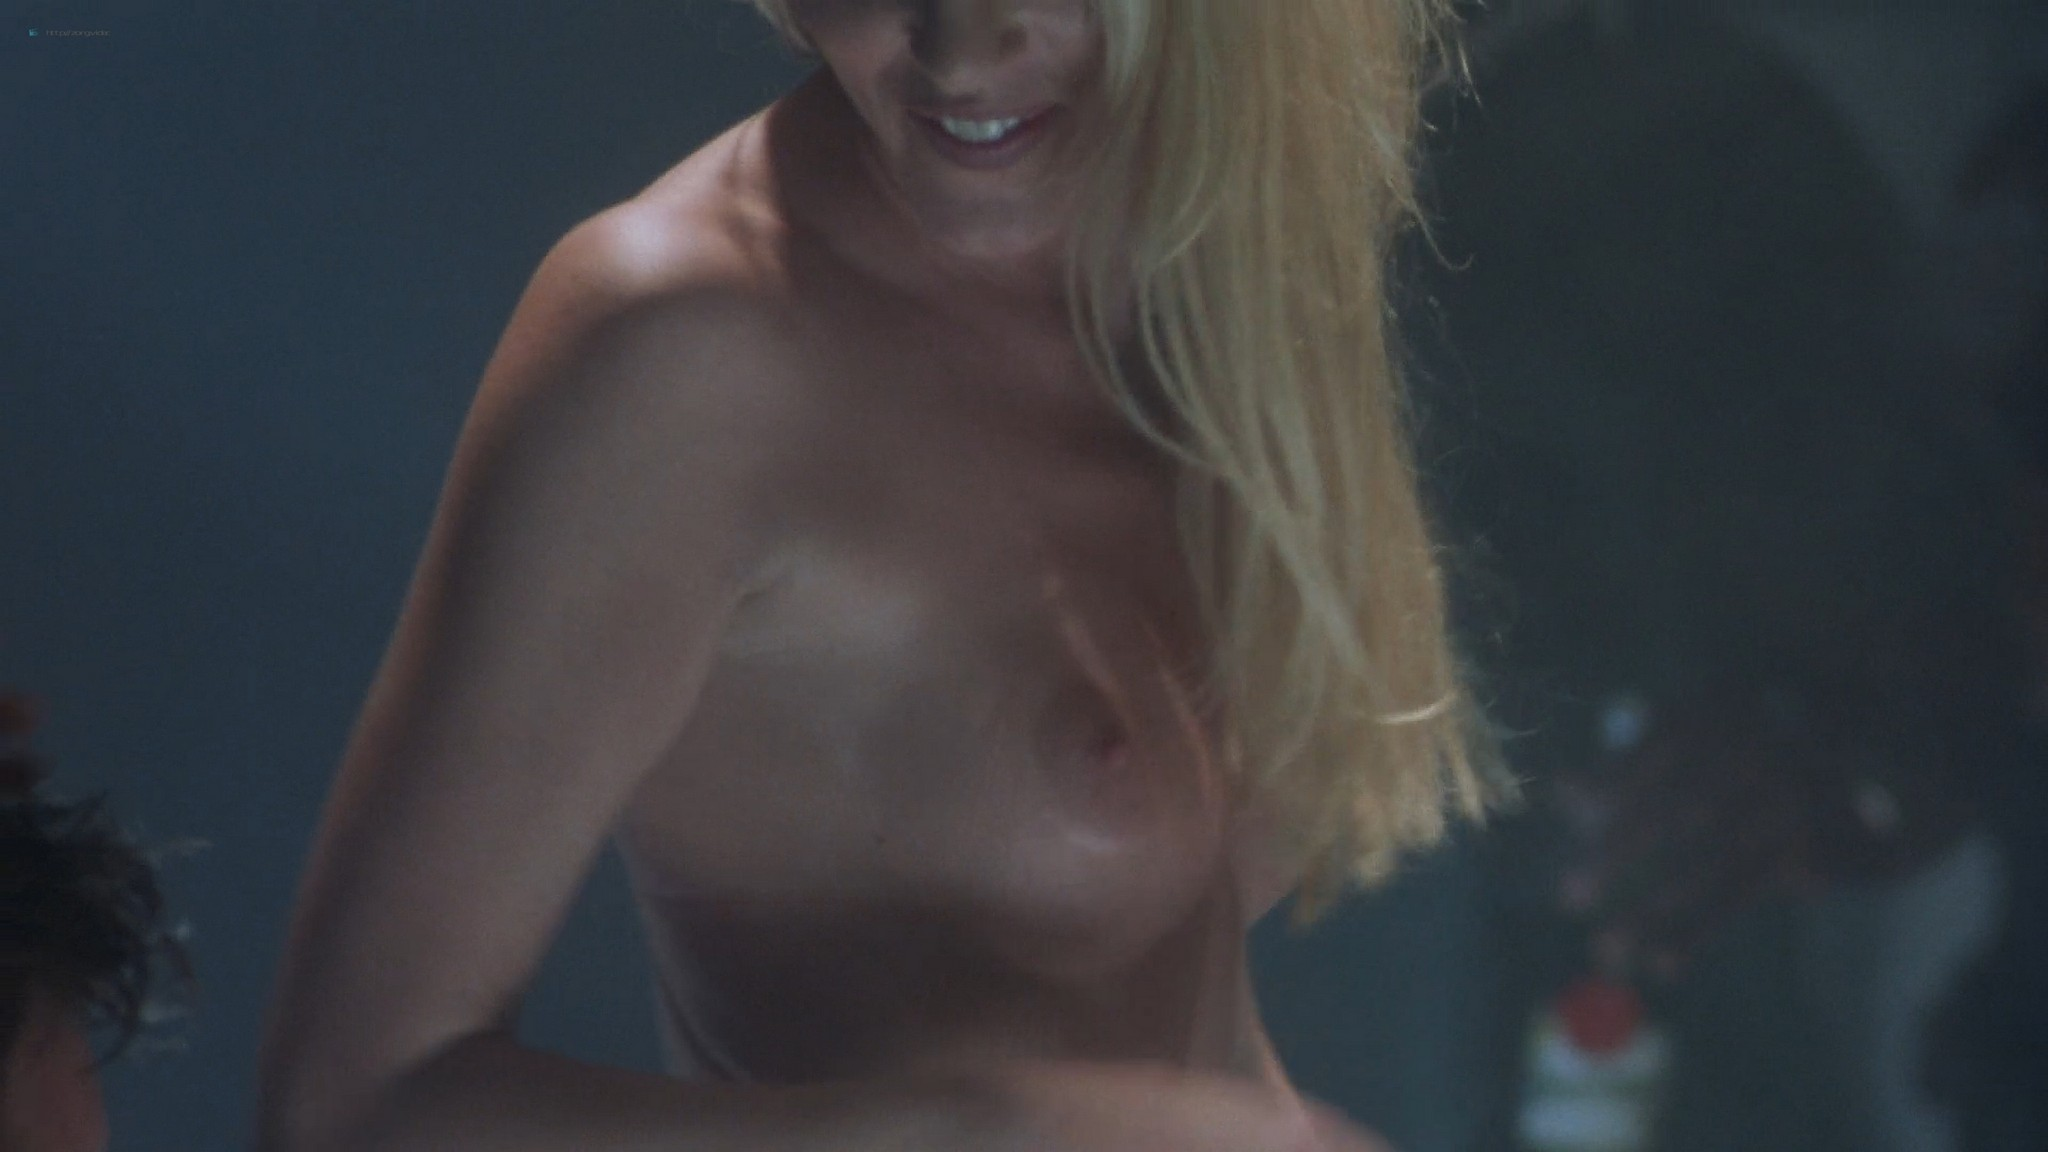 Taylor Dayne nude sex Jenny McShane nude stripping - Stag (1997) HD 1080p (13)